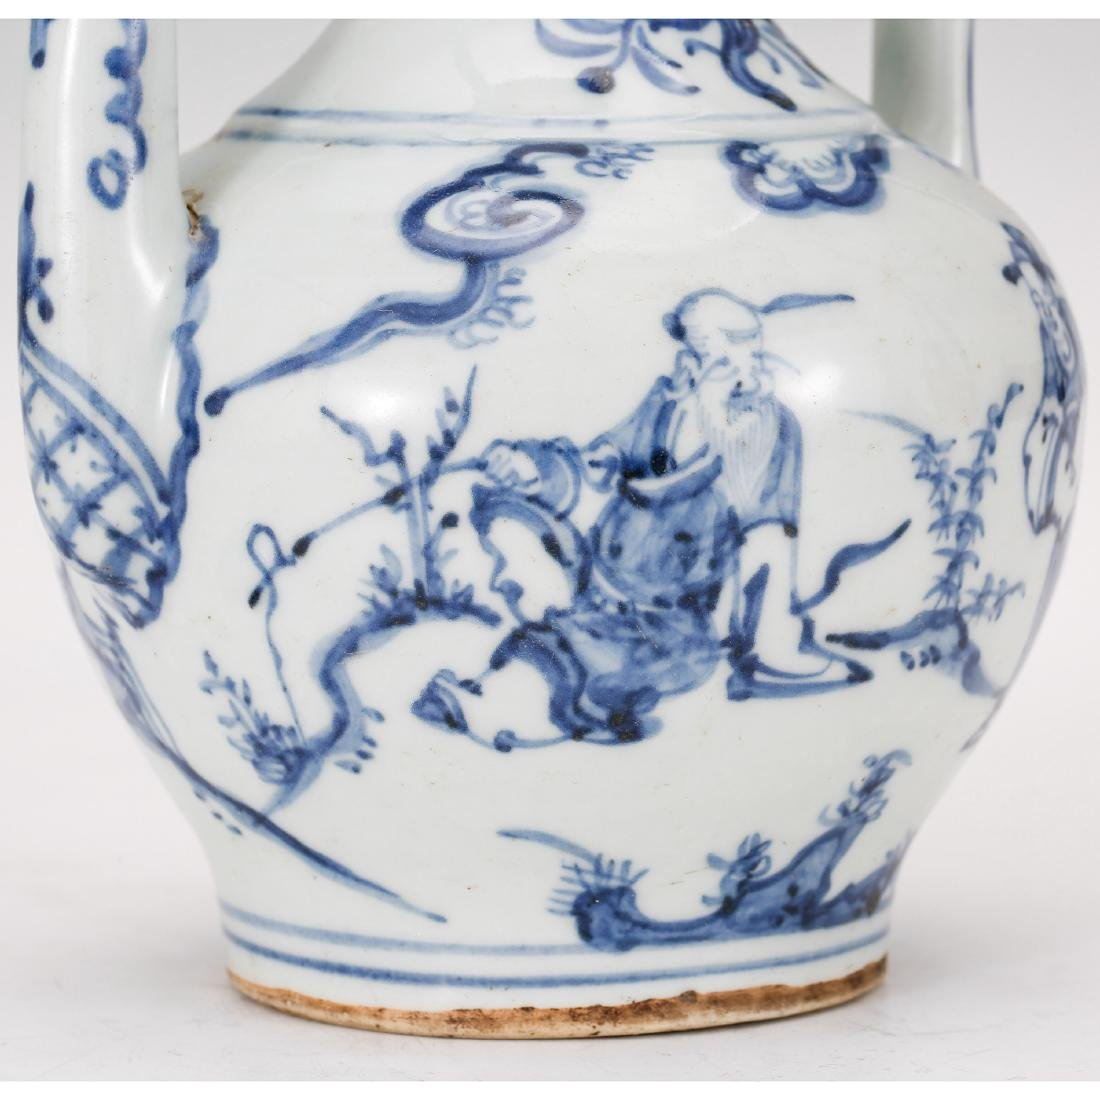 CHINESE BLUE AND WHITE PORCELAIN WINE EWER - 8